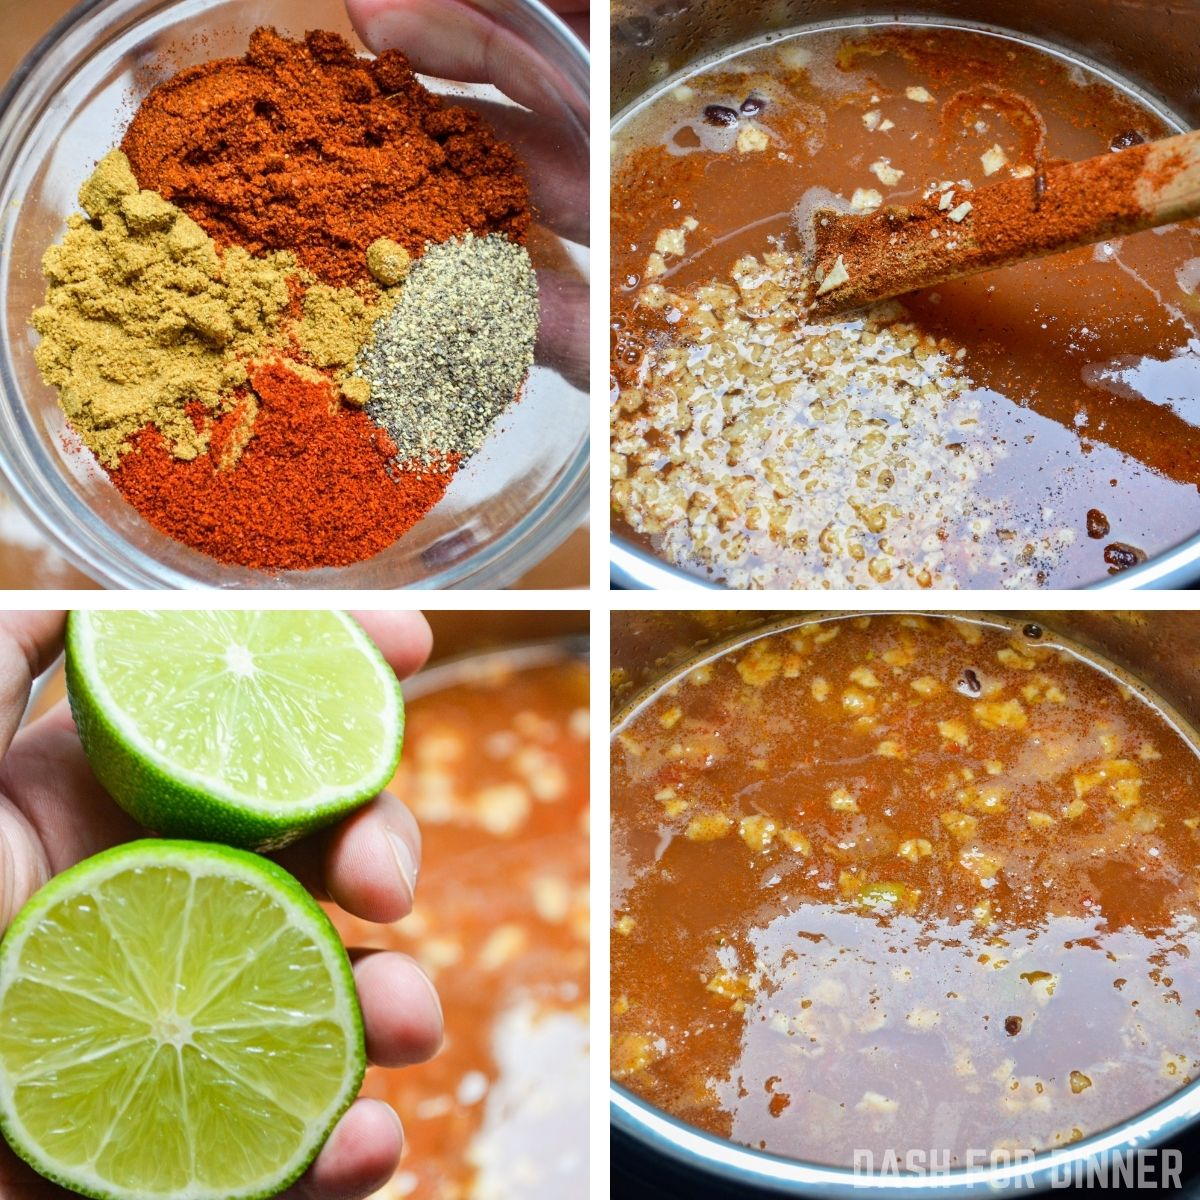 Adding seasoning and lime juice to an Instant Pot soup.